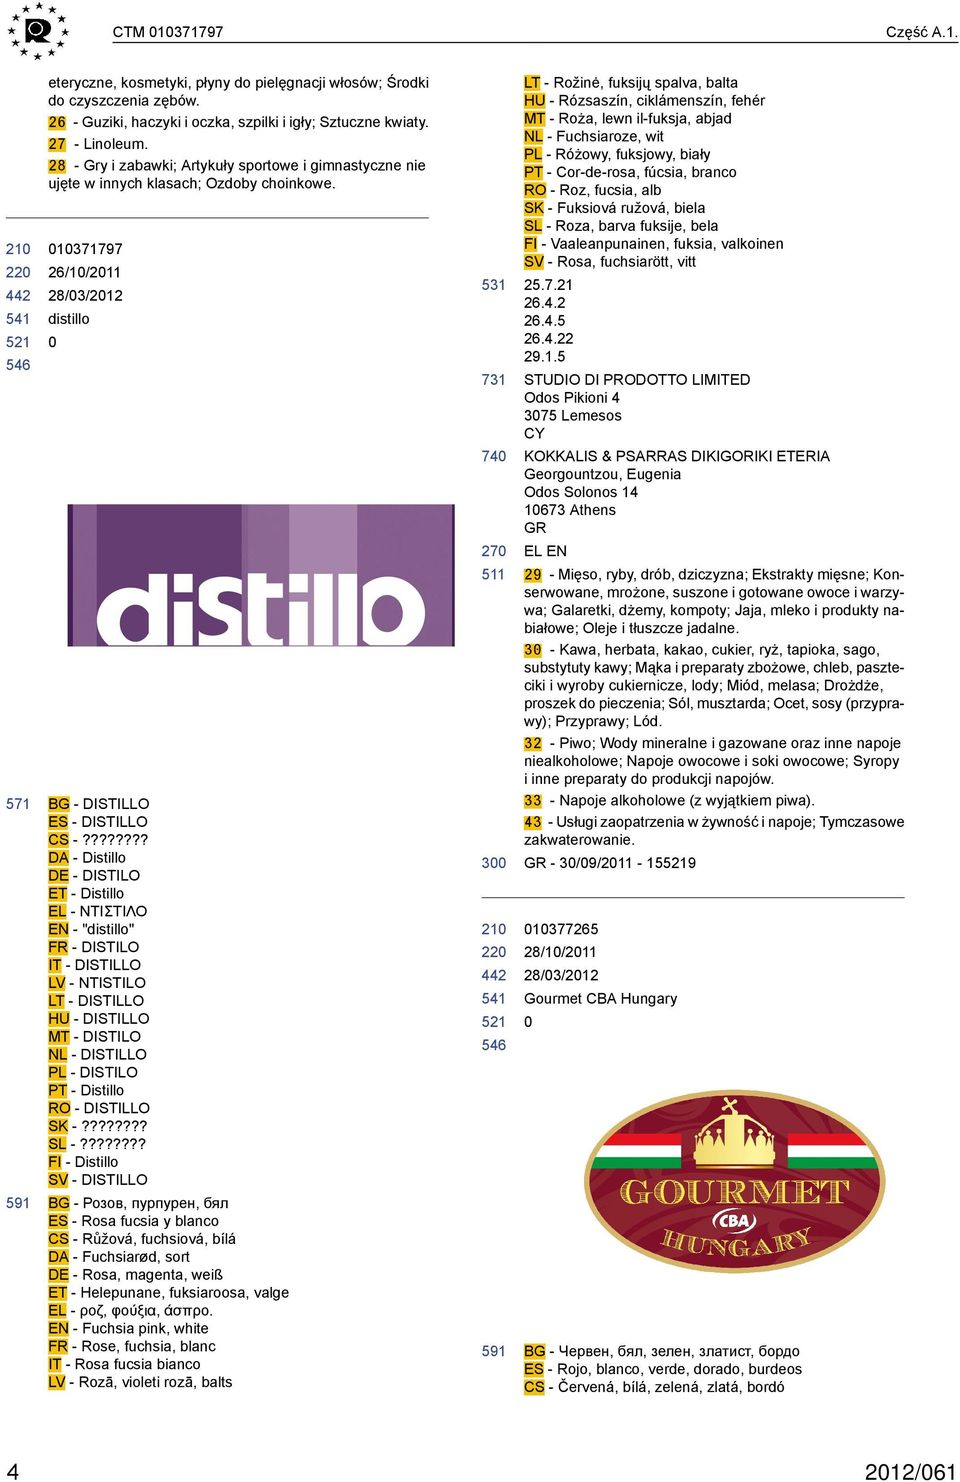 "??????? DA - Distillo - DISTILO ET - Distillo EL - ΝΤΙΣΤΙΛΟ EN - ""distillo"" FR - DISTILO IT - DISTILLO LV - NTISTILO LT - DISTILLO HU - DISTILLO MT - DISTILO NL - DISTILLO PL - DISTILO PT - Distillo"